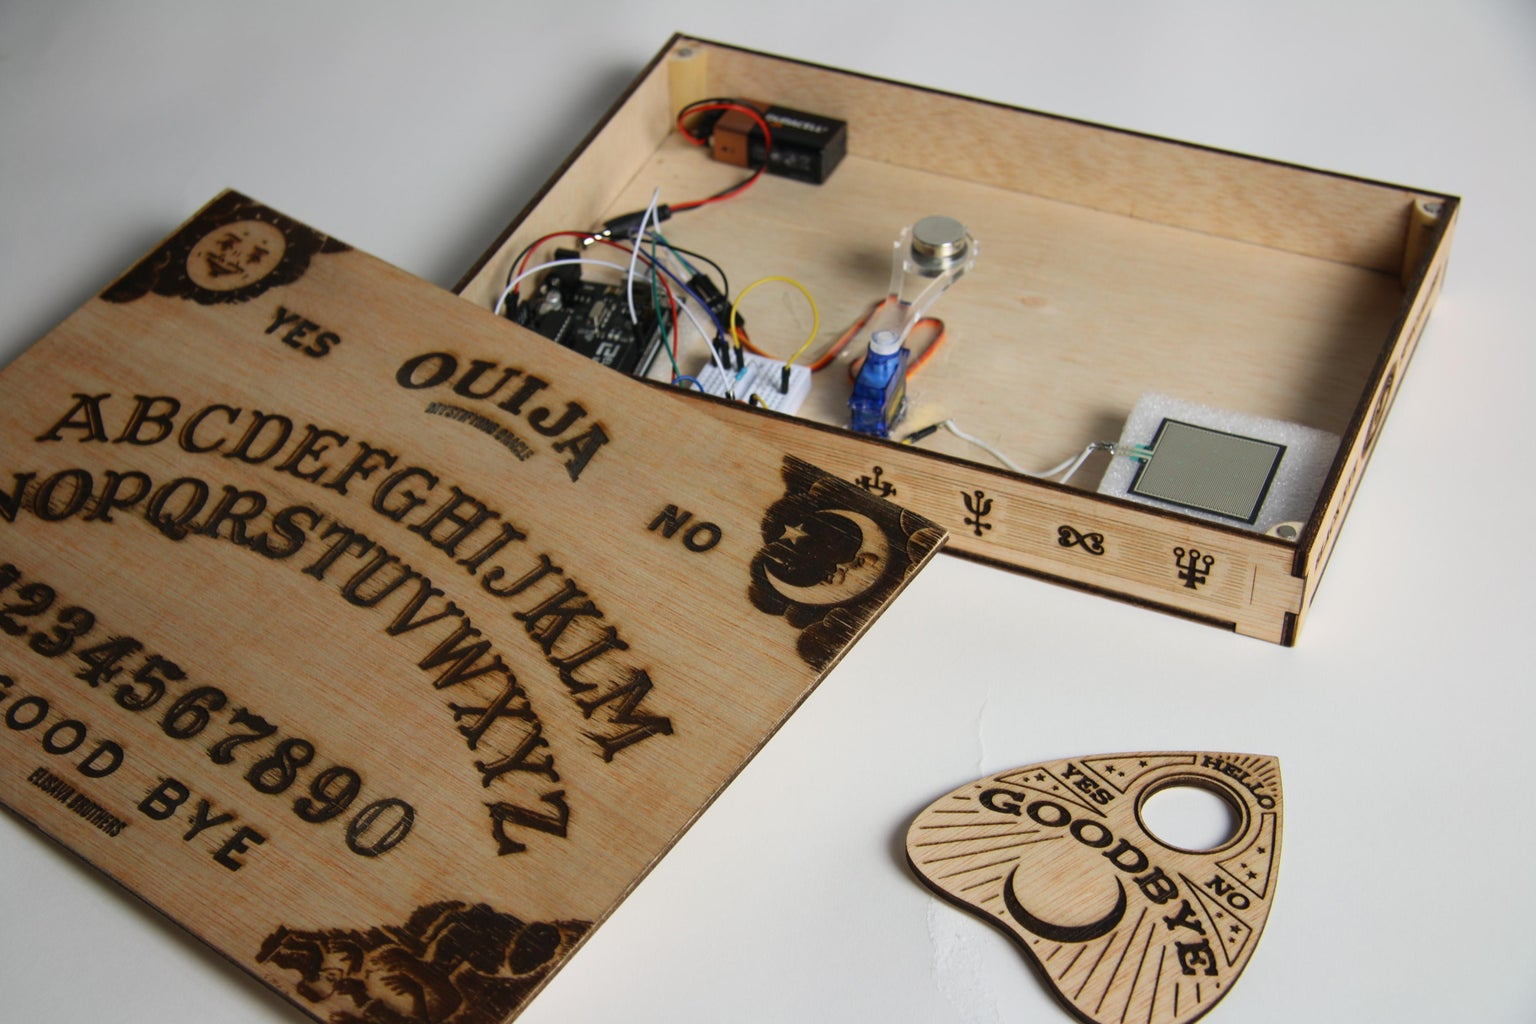 HOW TO BUILD THE OUIJA?